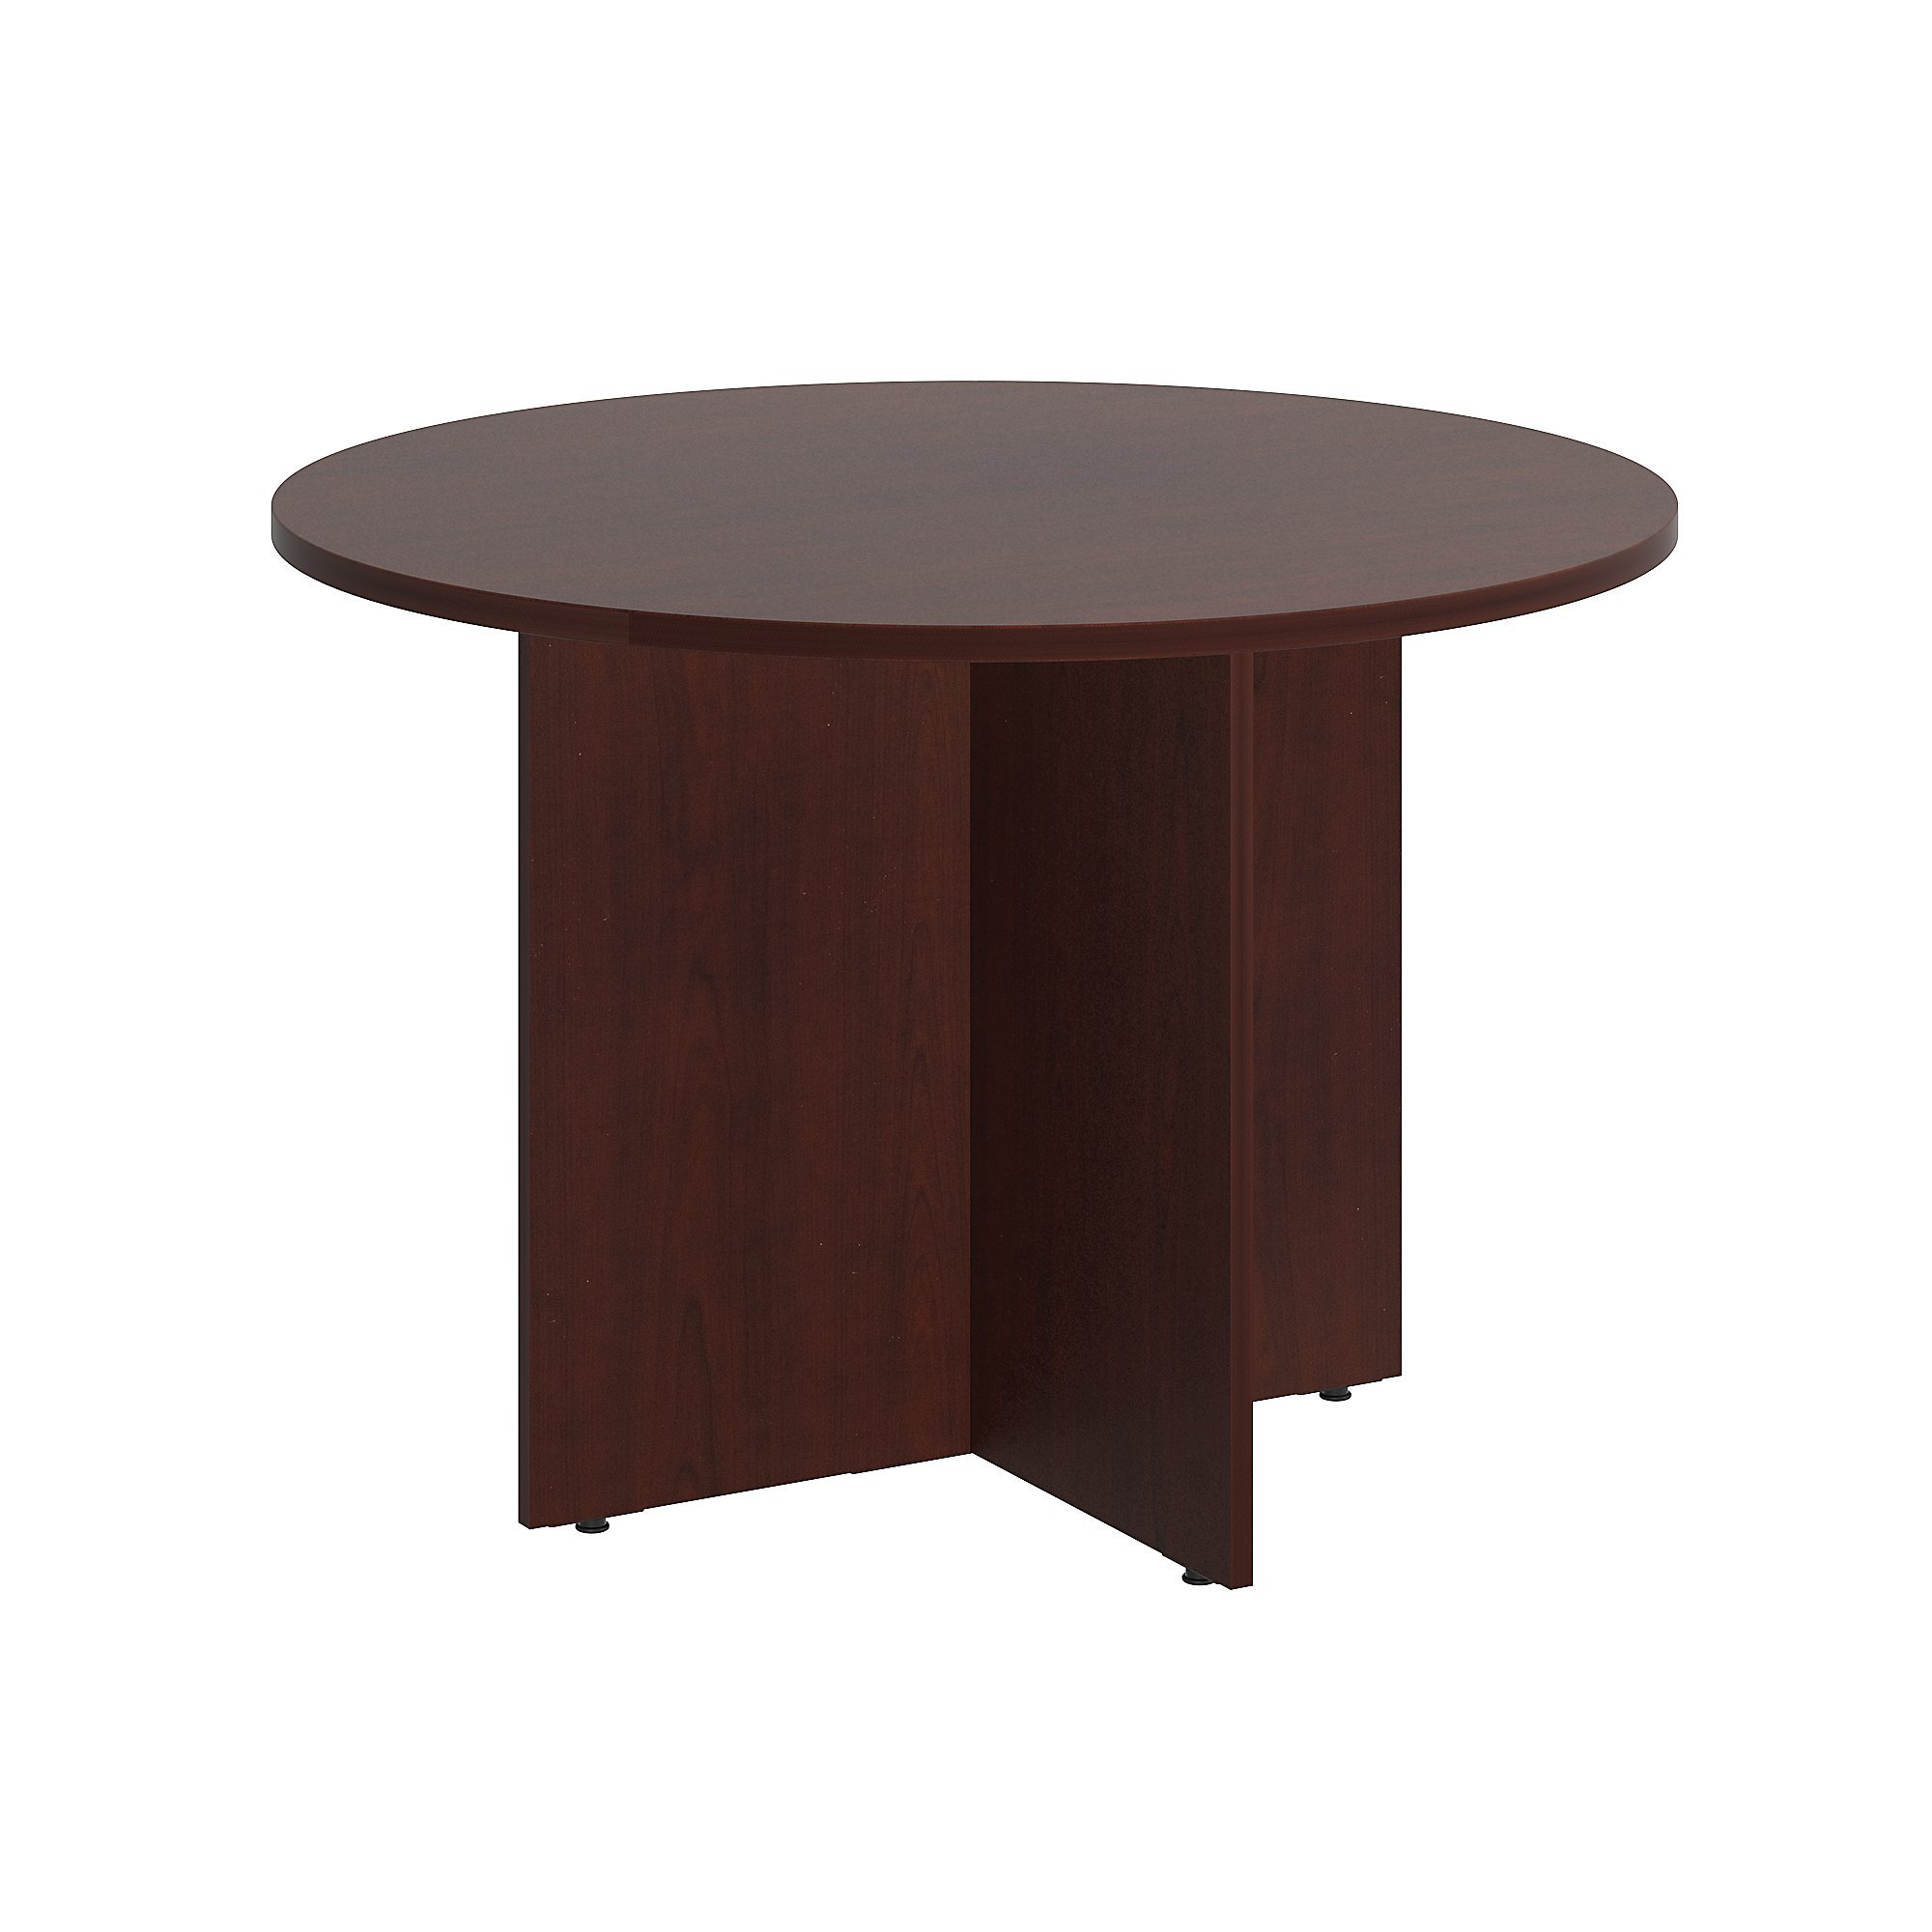 Bush Business Furniture 42W Round Conference Table with Wood Base in Harvest Cherry by Bush Business Furniture